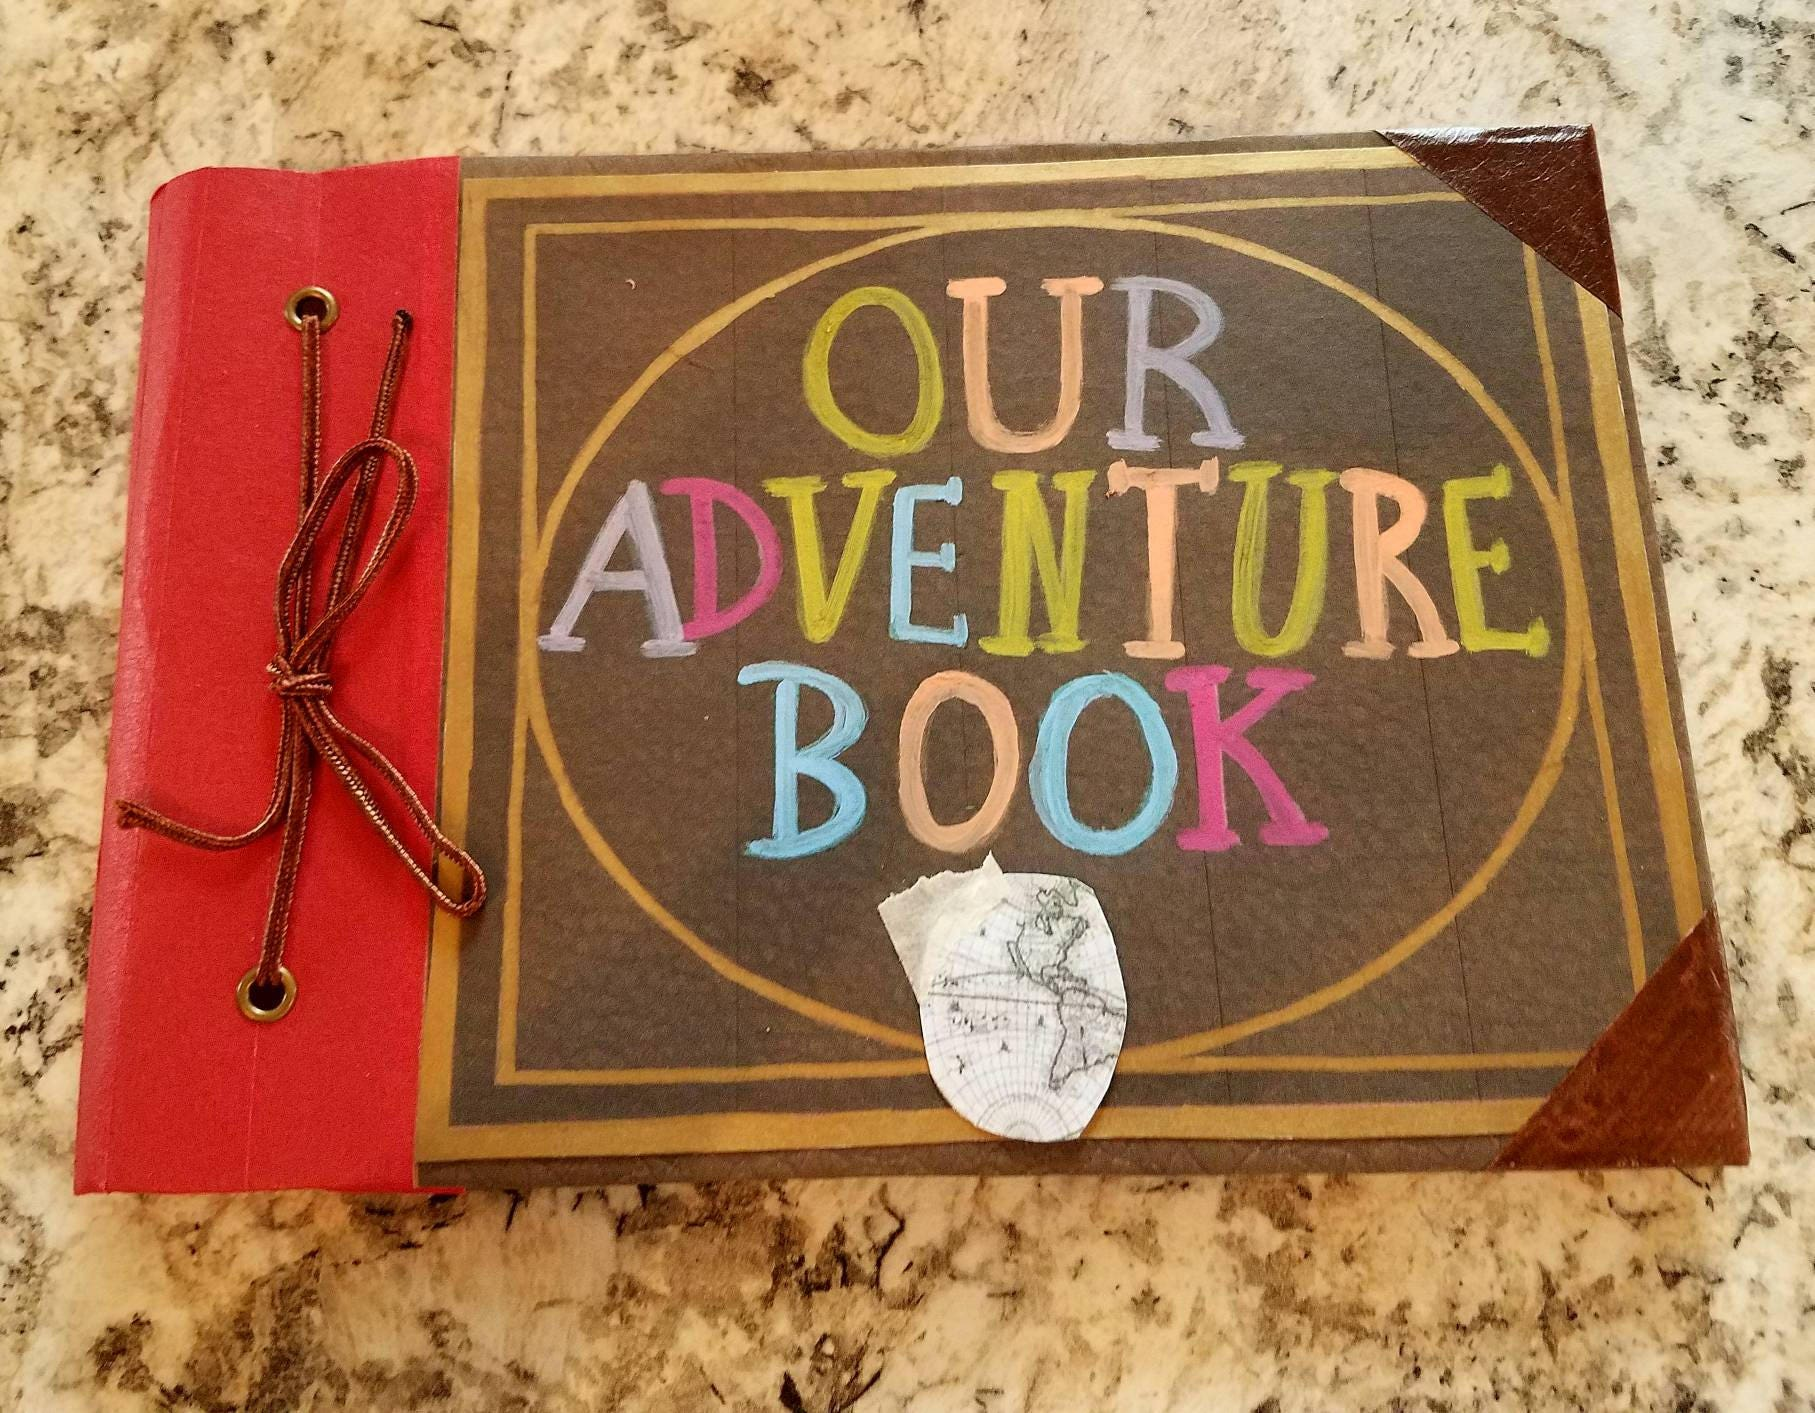 NEW size!!!! Our Adventure Book, My Adventure Book, Hand Painted, Up Movie  Book, Ellie's Book, Wedding Guest Book, 5 x 7